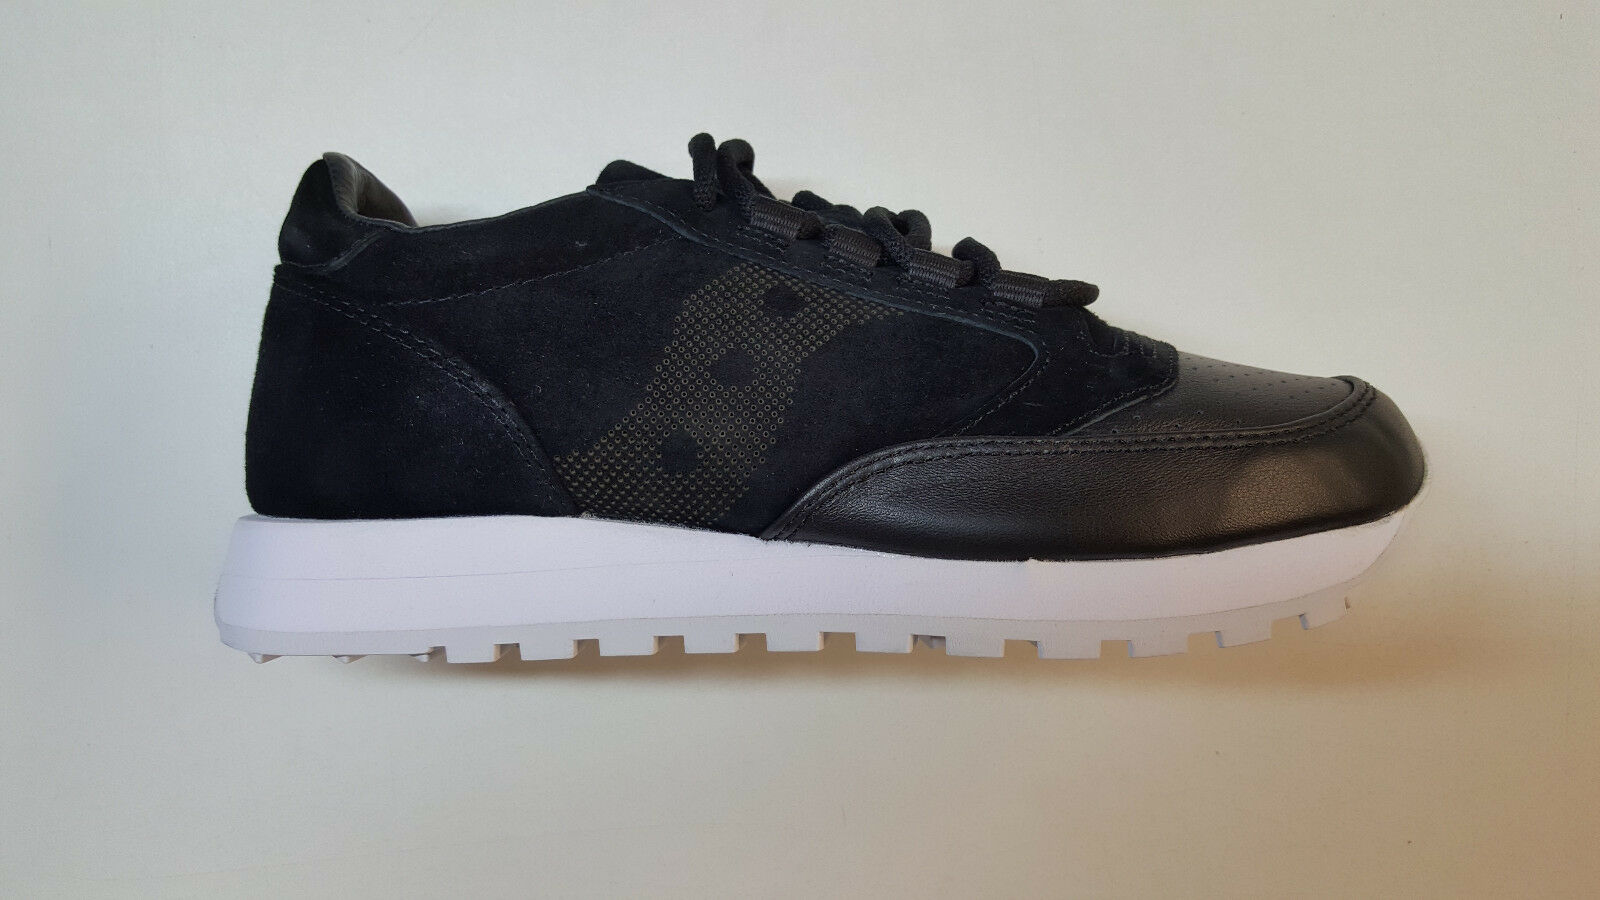 SAUCONY JAZZ ORIGINAL 35TH ANNIVERSARY LUX schwarz LEATHER SUEDE MENS S70264-1